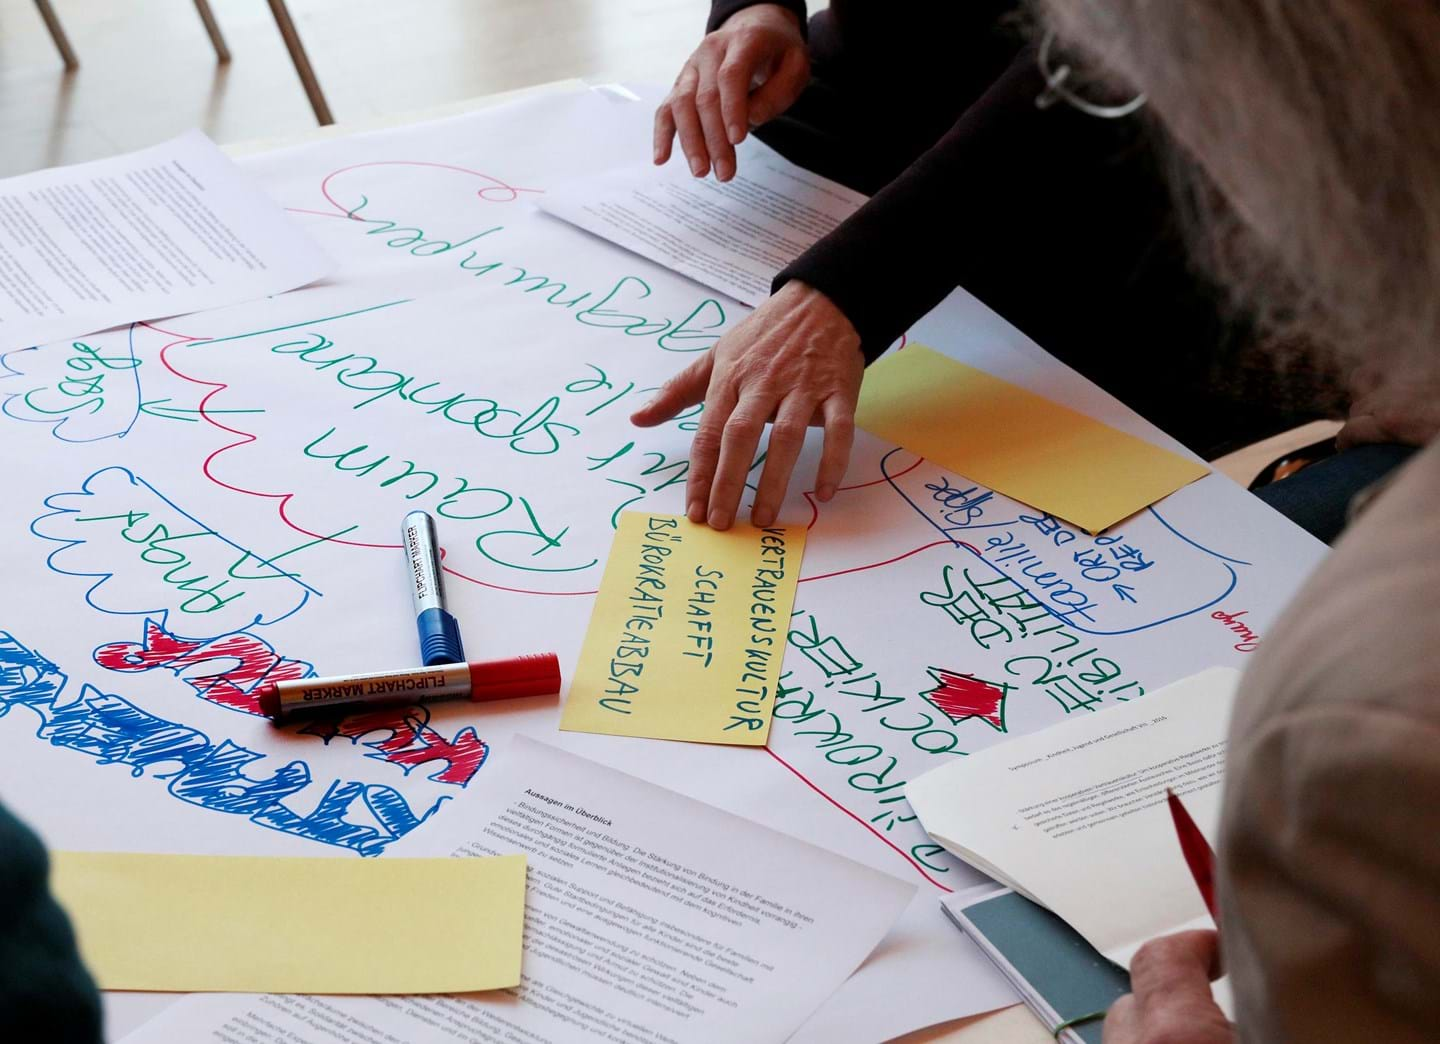 People have their say in the World Café